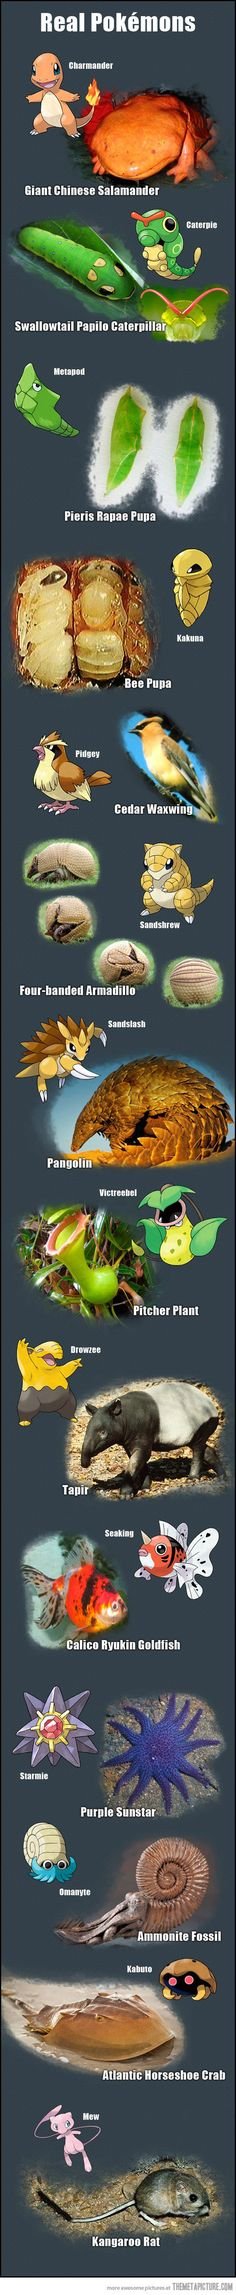 YEP.  I'm pinning this as a segue into a life science lesson.  And to think, I thought POKEMON WASN'T THE COOL THING ANYMORE.  I continue to be proven WAAAAAY wrong this year!!!